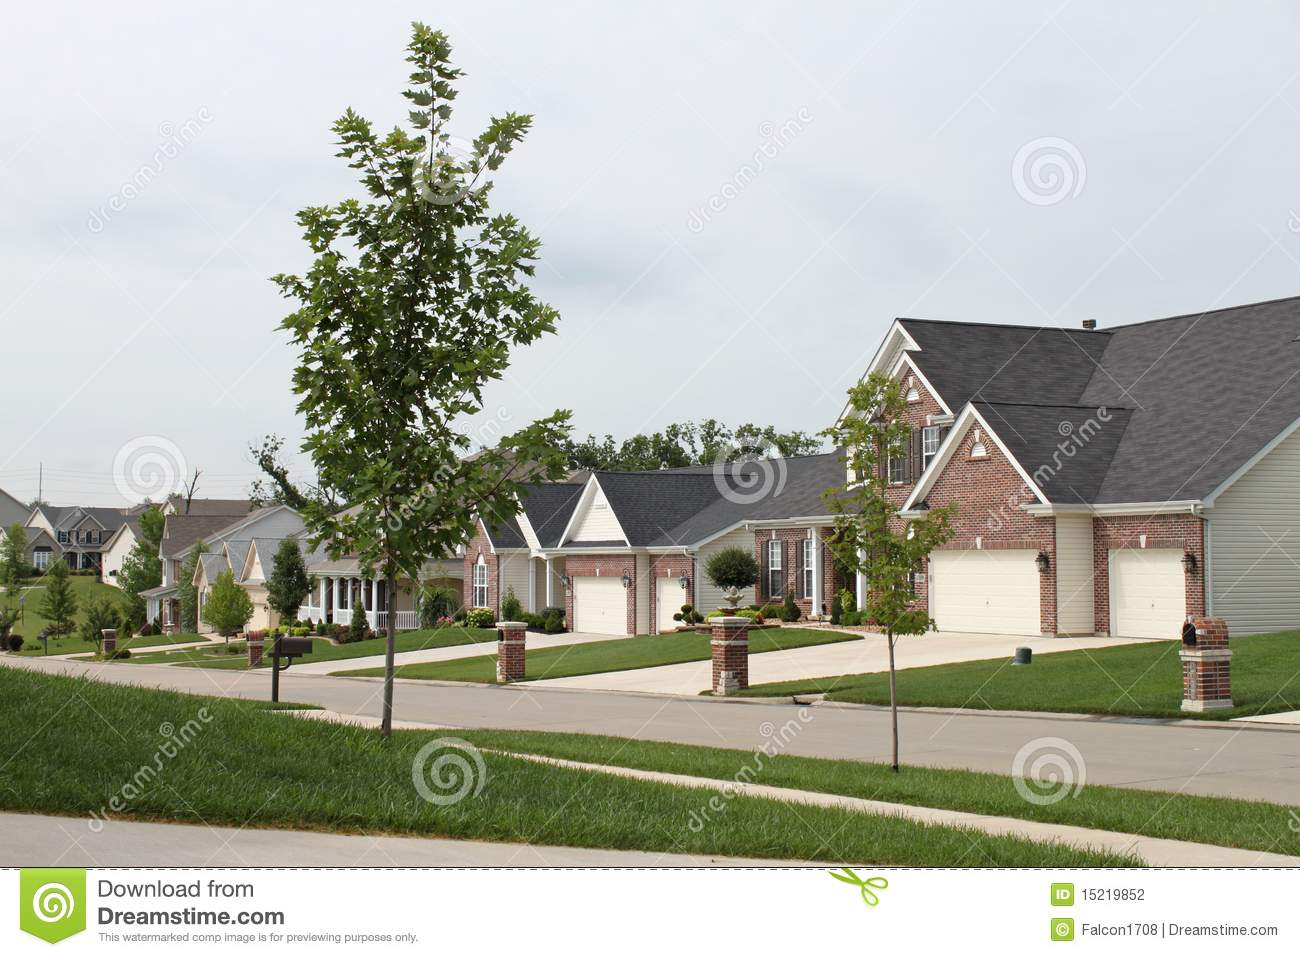 Midwest homes stock photography image 15219852 for Midwest home builders